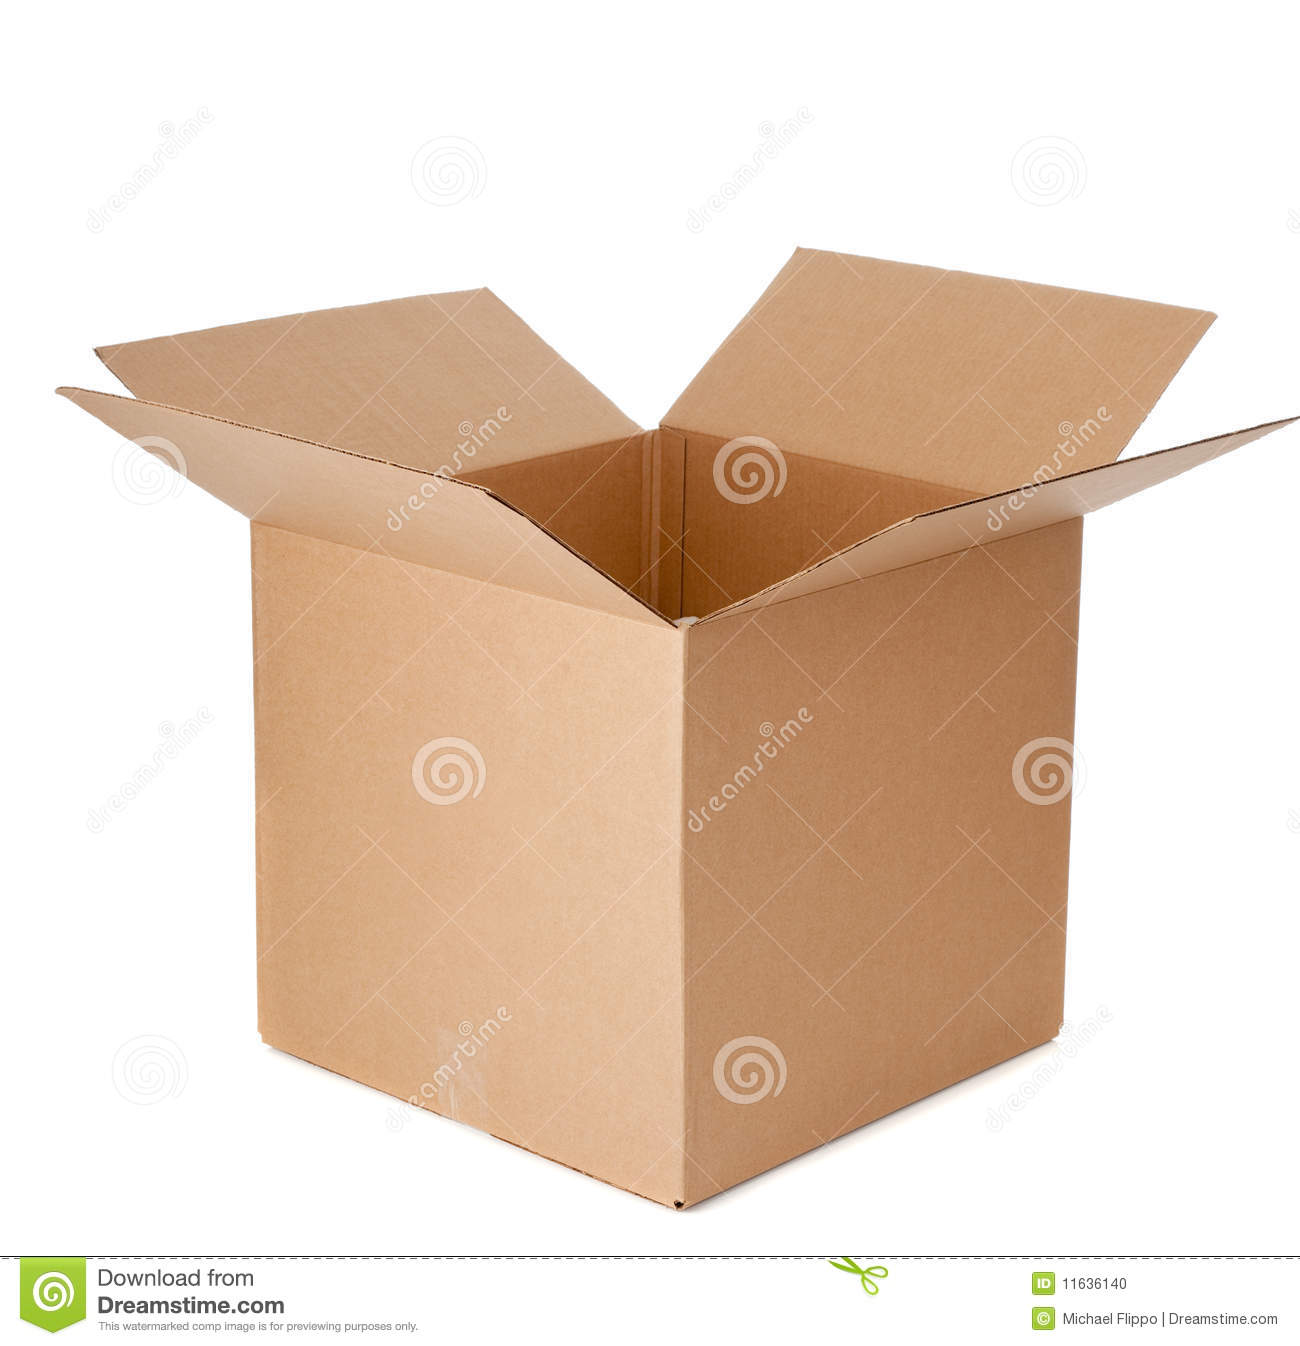 An open empty cardboard box